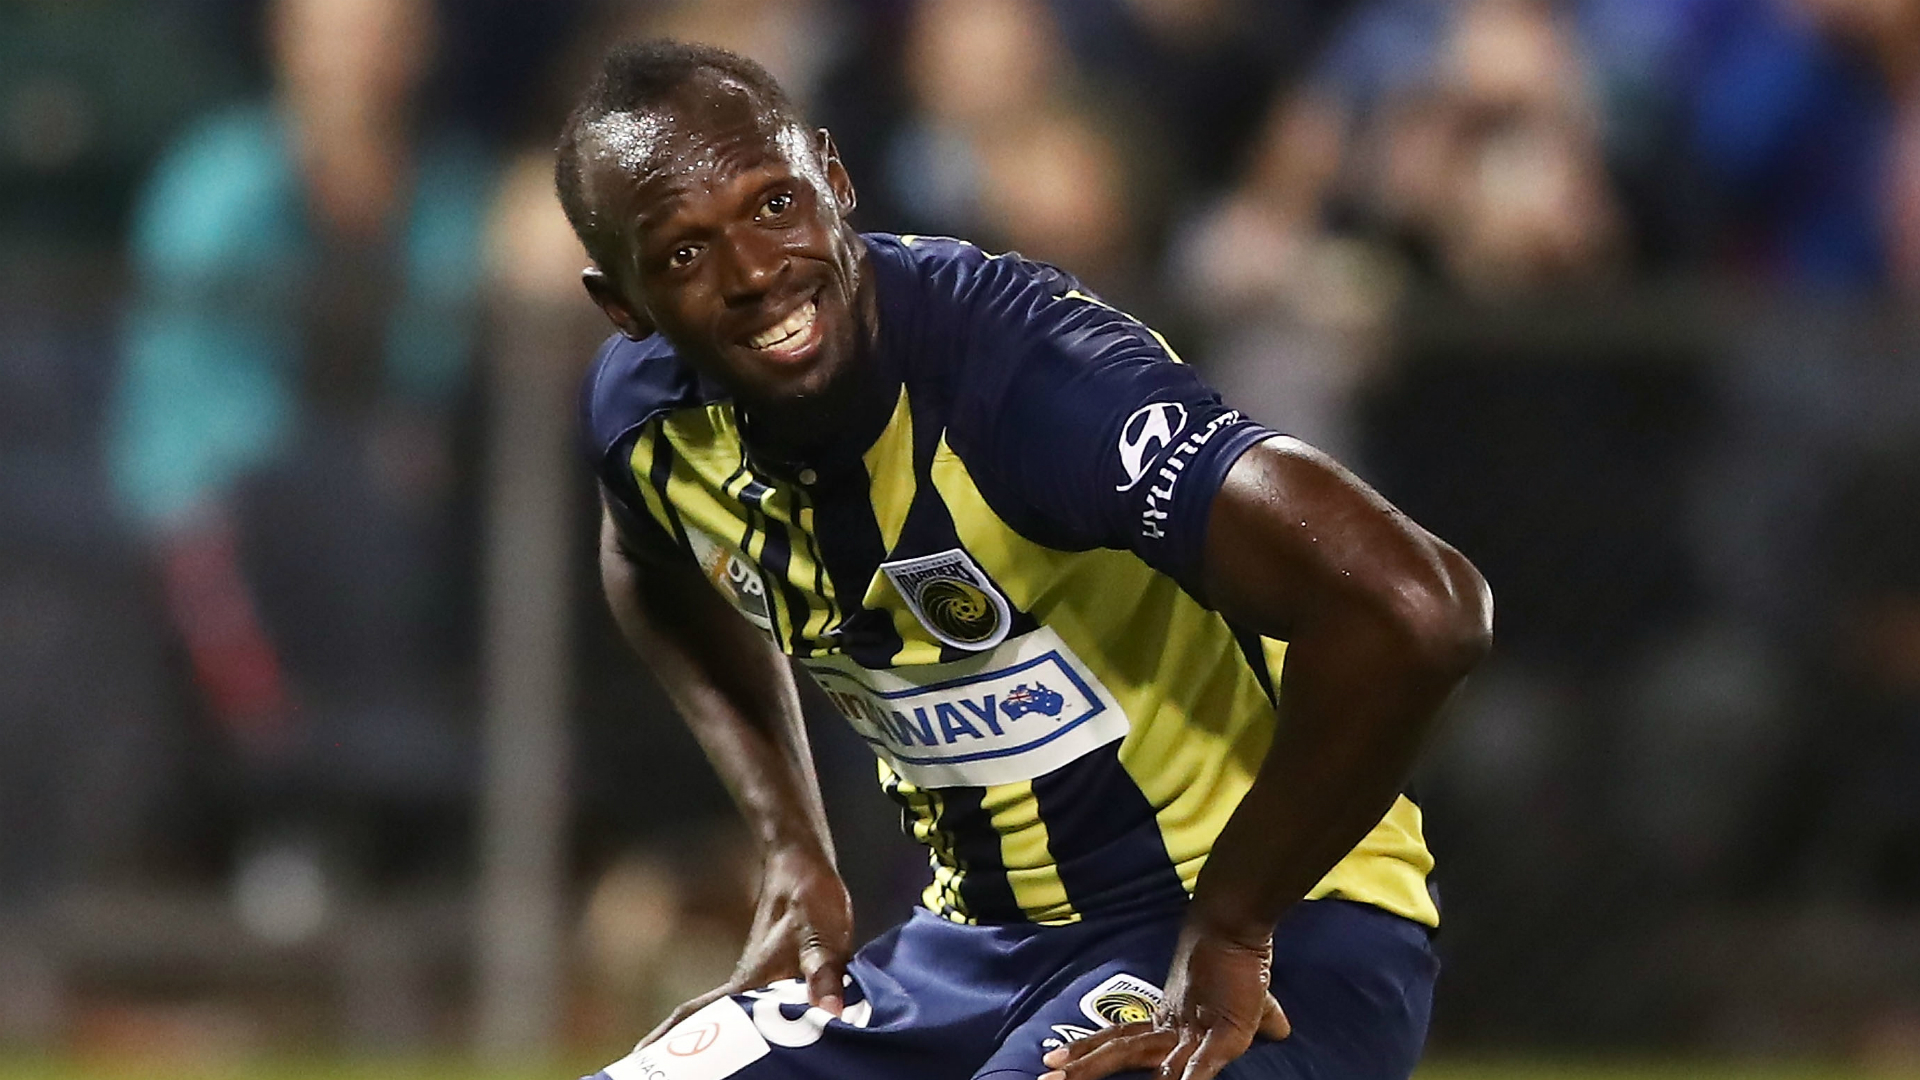 'I'm not a professional footballer yet' - Usain Bolt questions drug test request